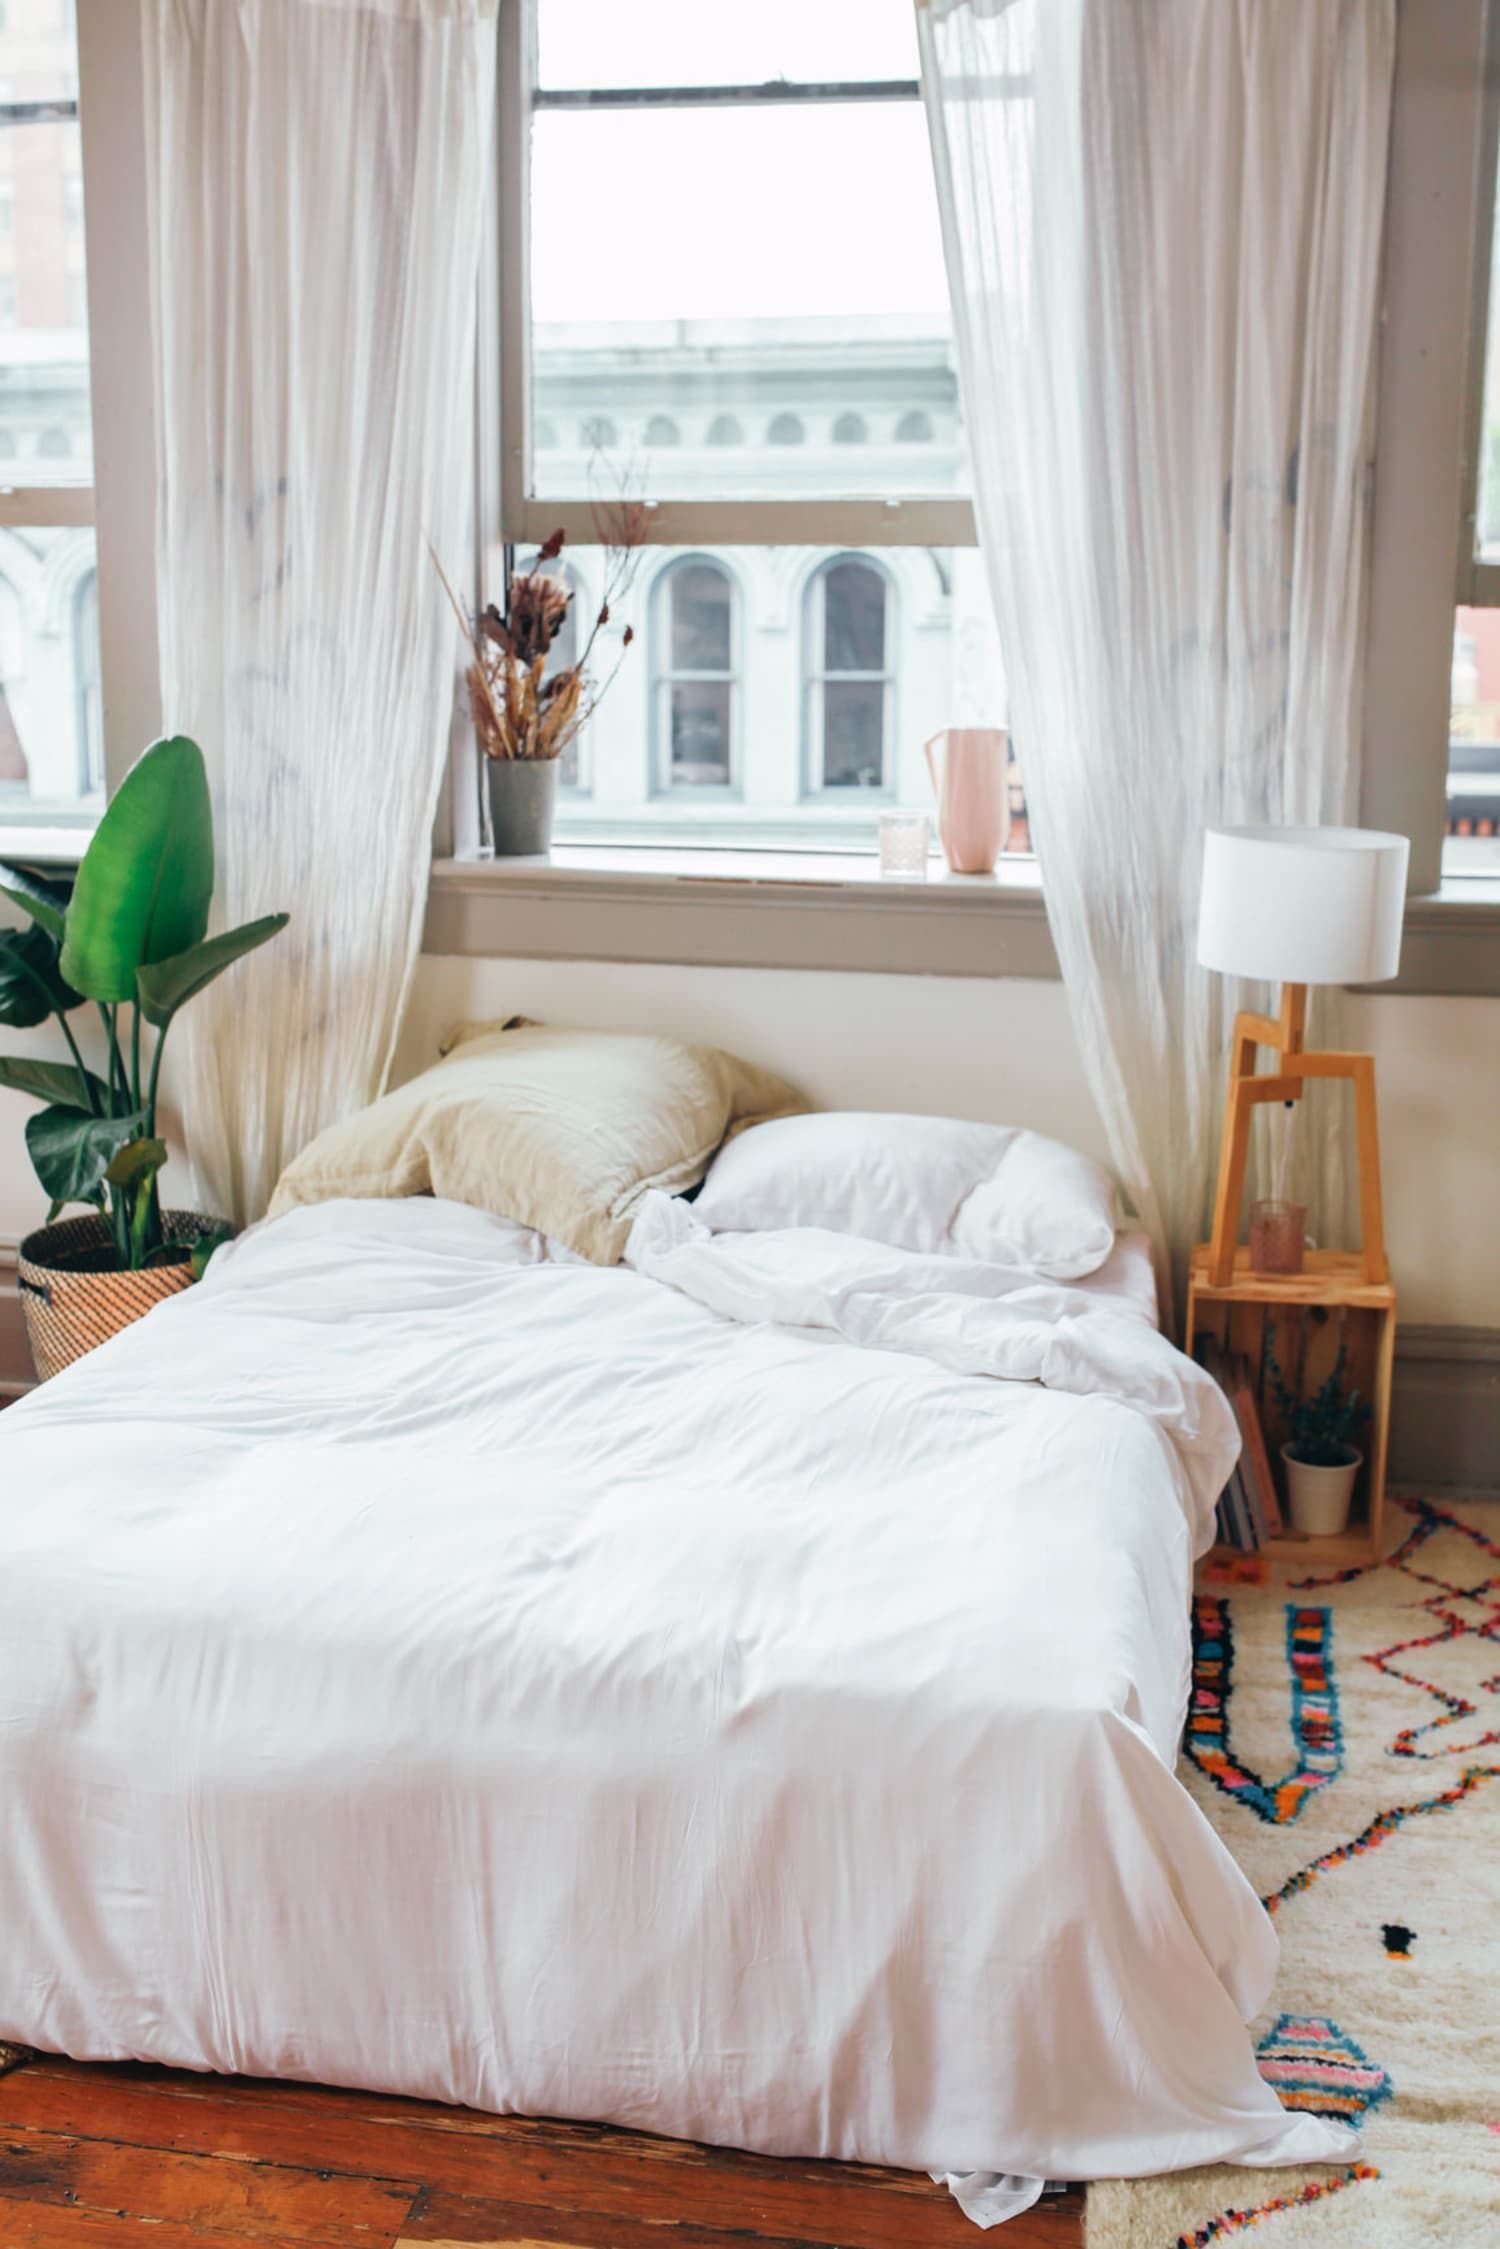 6 Products for Avoiding Bed Bugs (and Getting Rid of Them